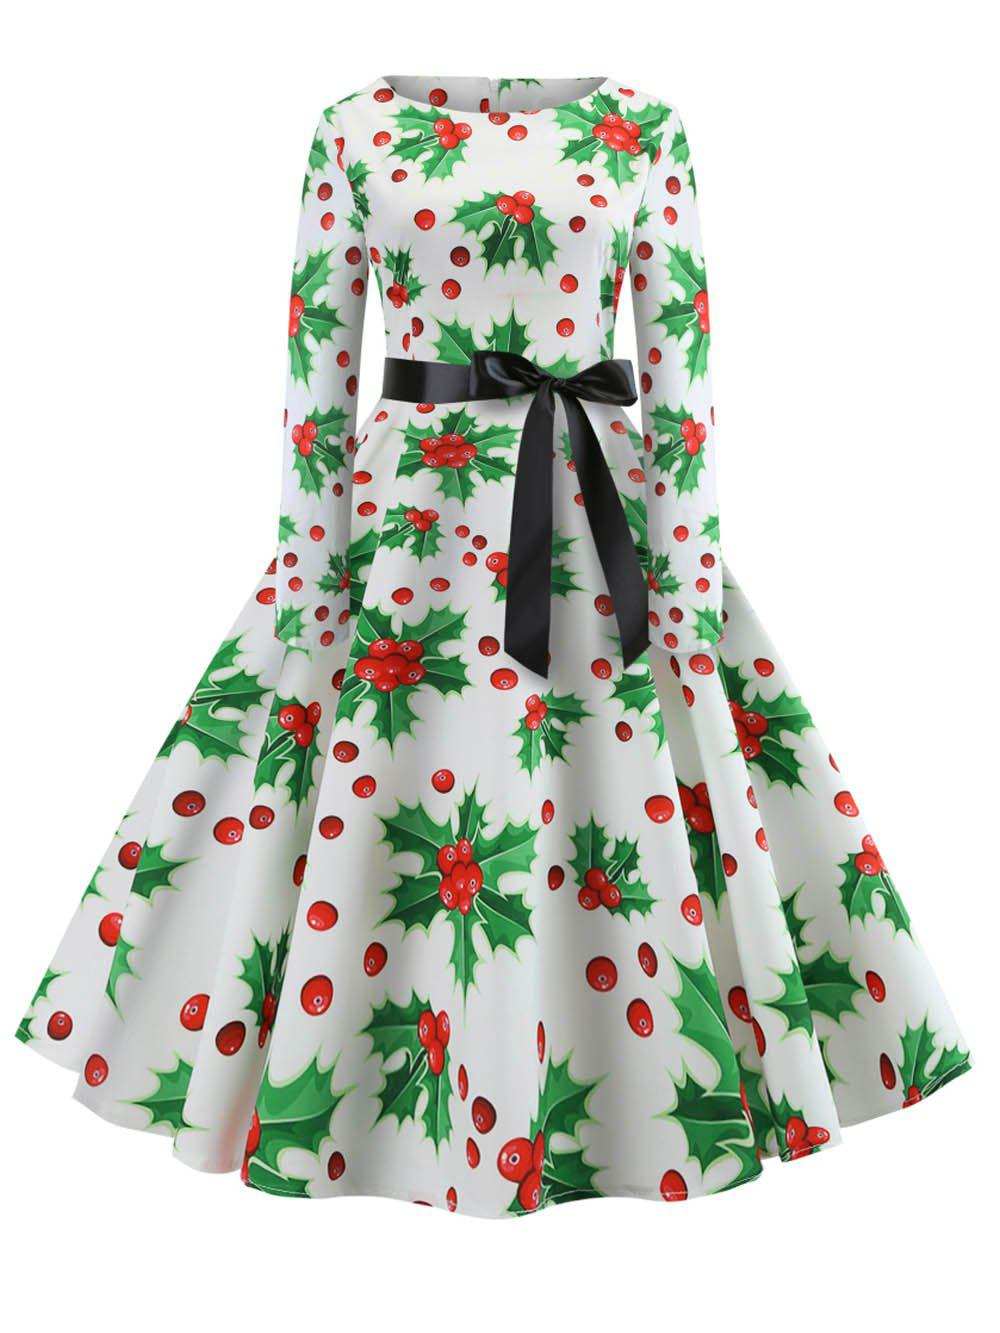 Trendy Hepburn Vintage Series Women Dress Spring And Winter Round Neck Christmas Printing Stitching Design Long Sleeve Belt Corset Retro Dress